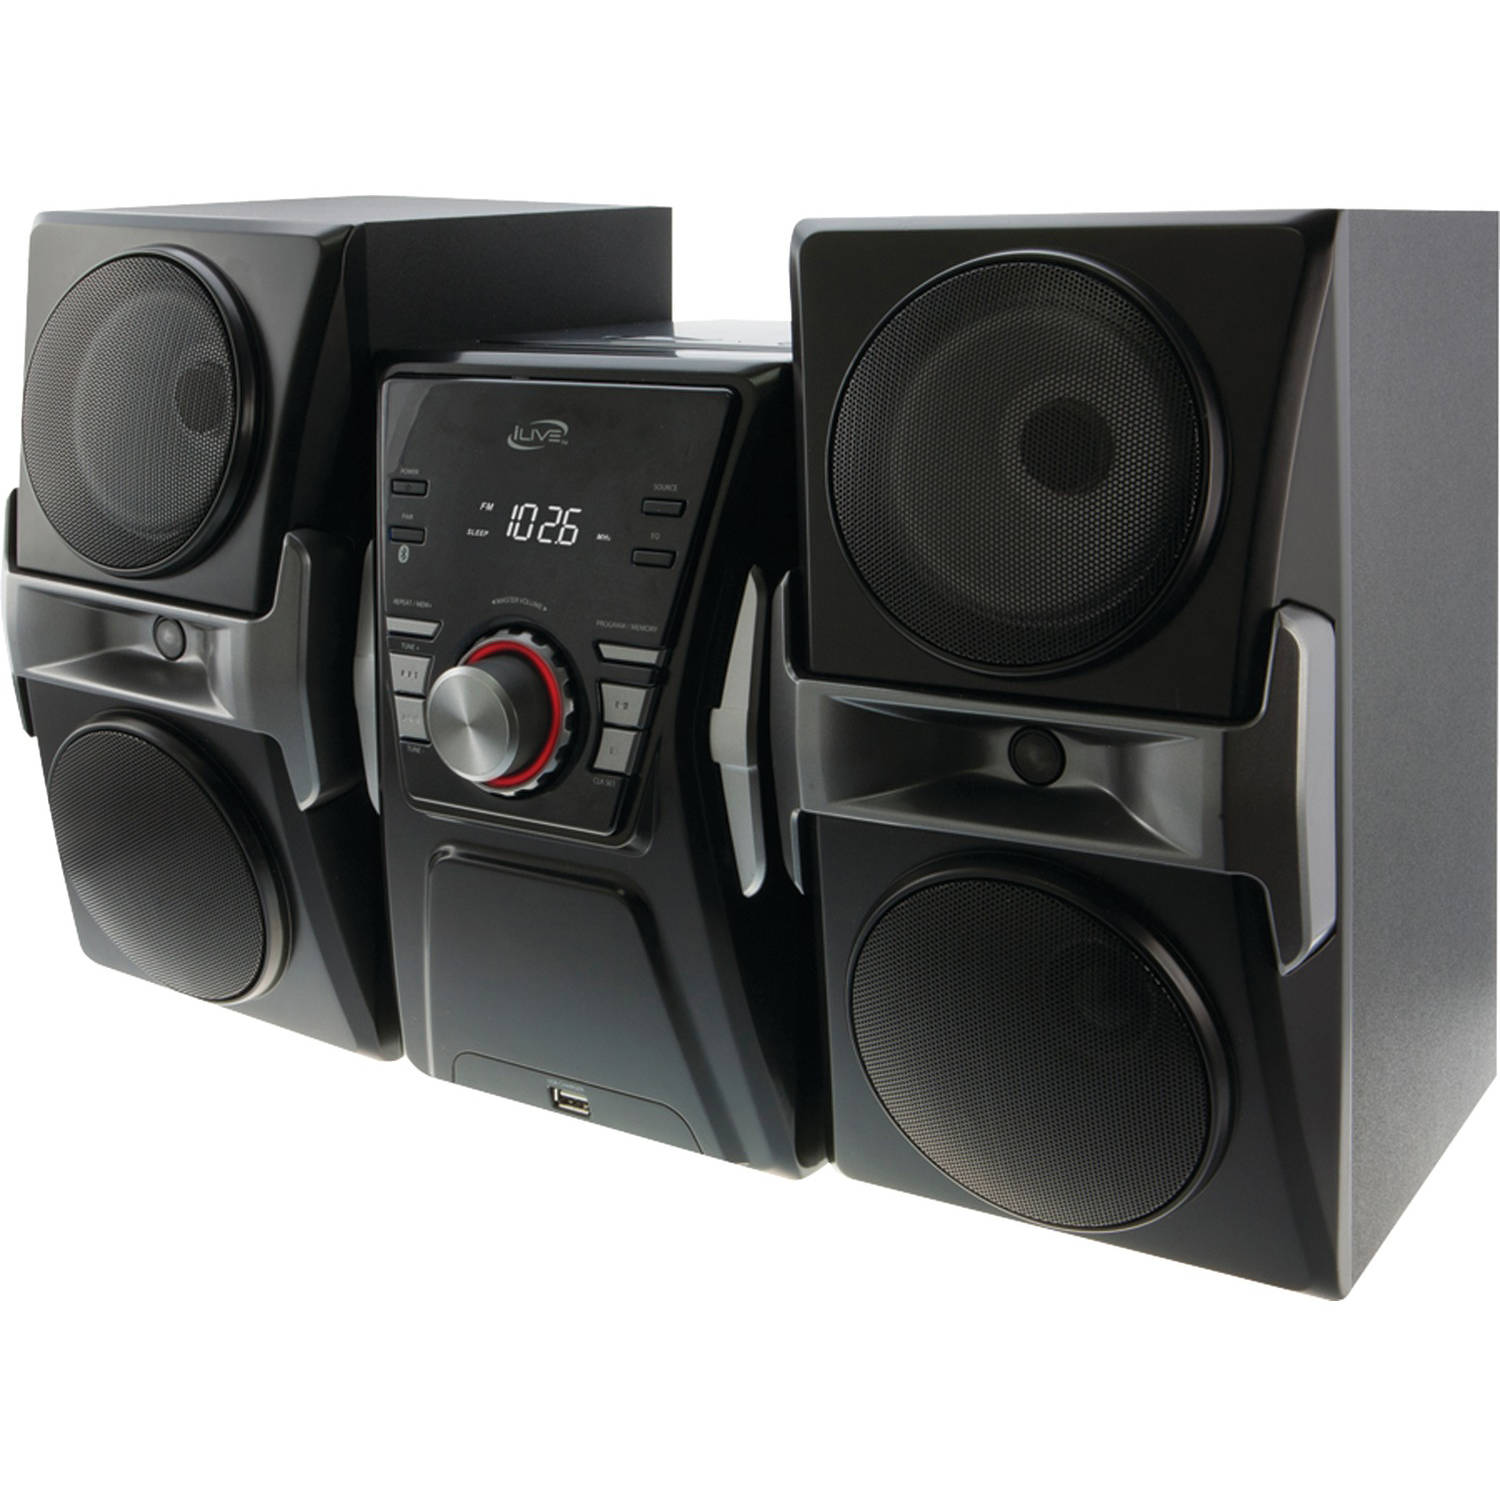 iLive IHB624B Bluetooth Home Music System with FM Tuner and LED Lights